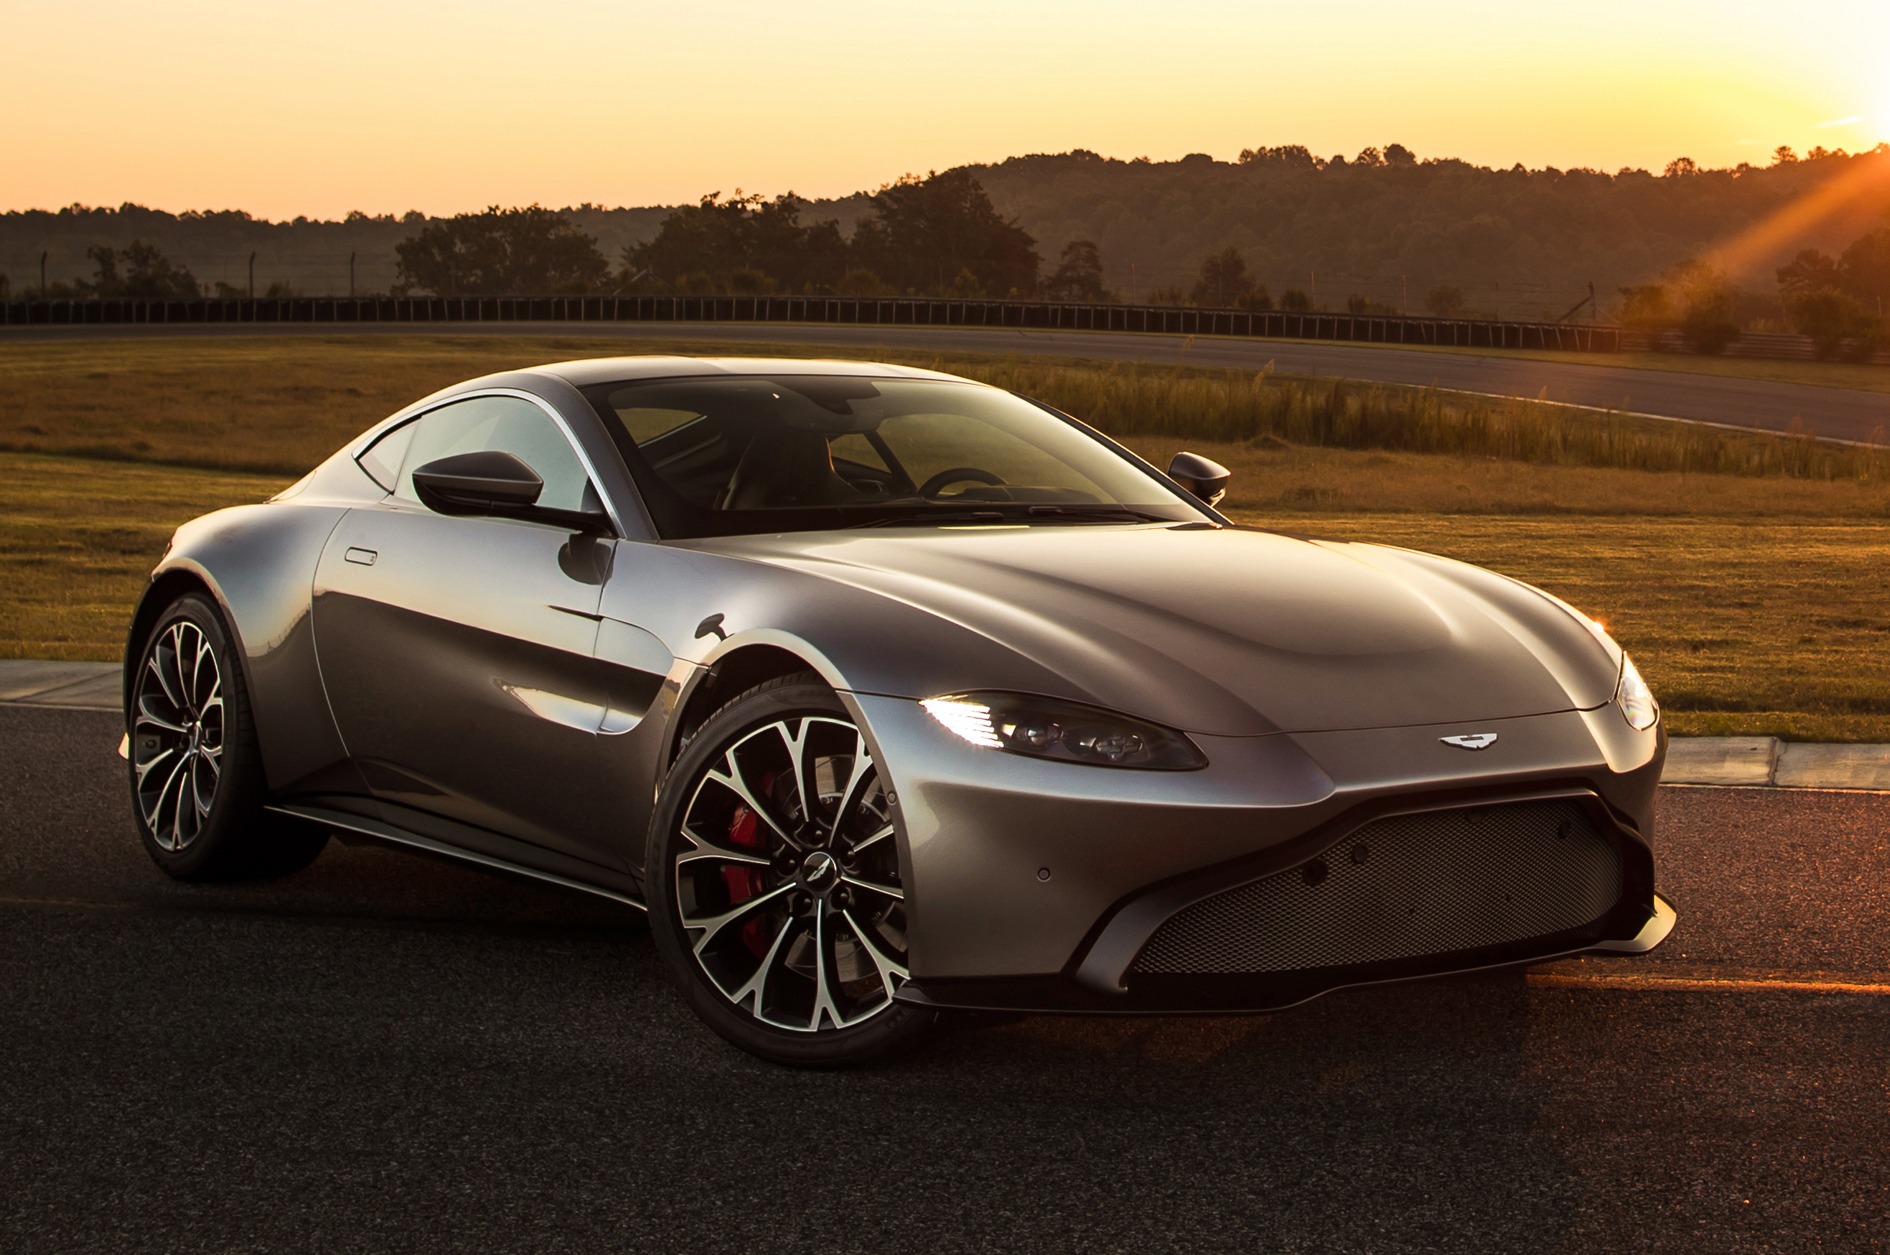 Aston Martin Vantage 2019 Ultimate Jet The Voice Of Business Aviation Since 2008